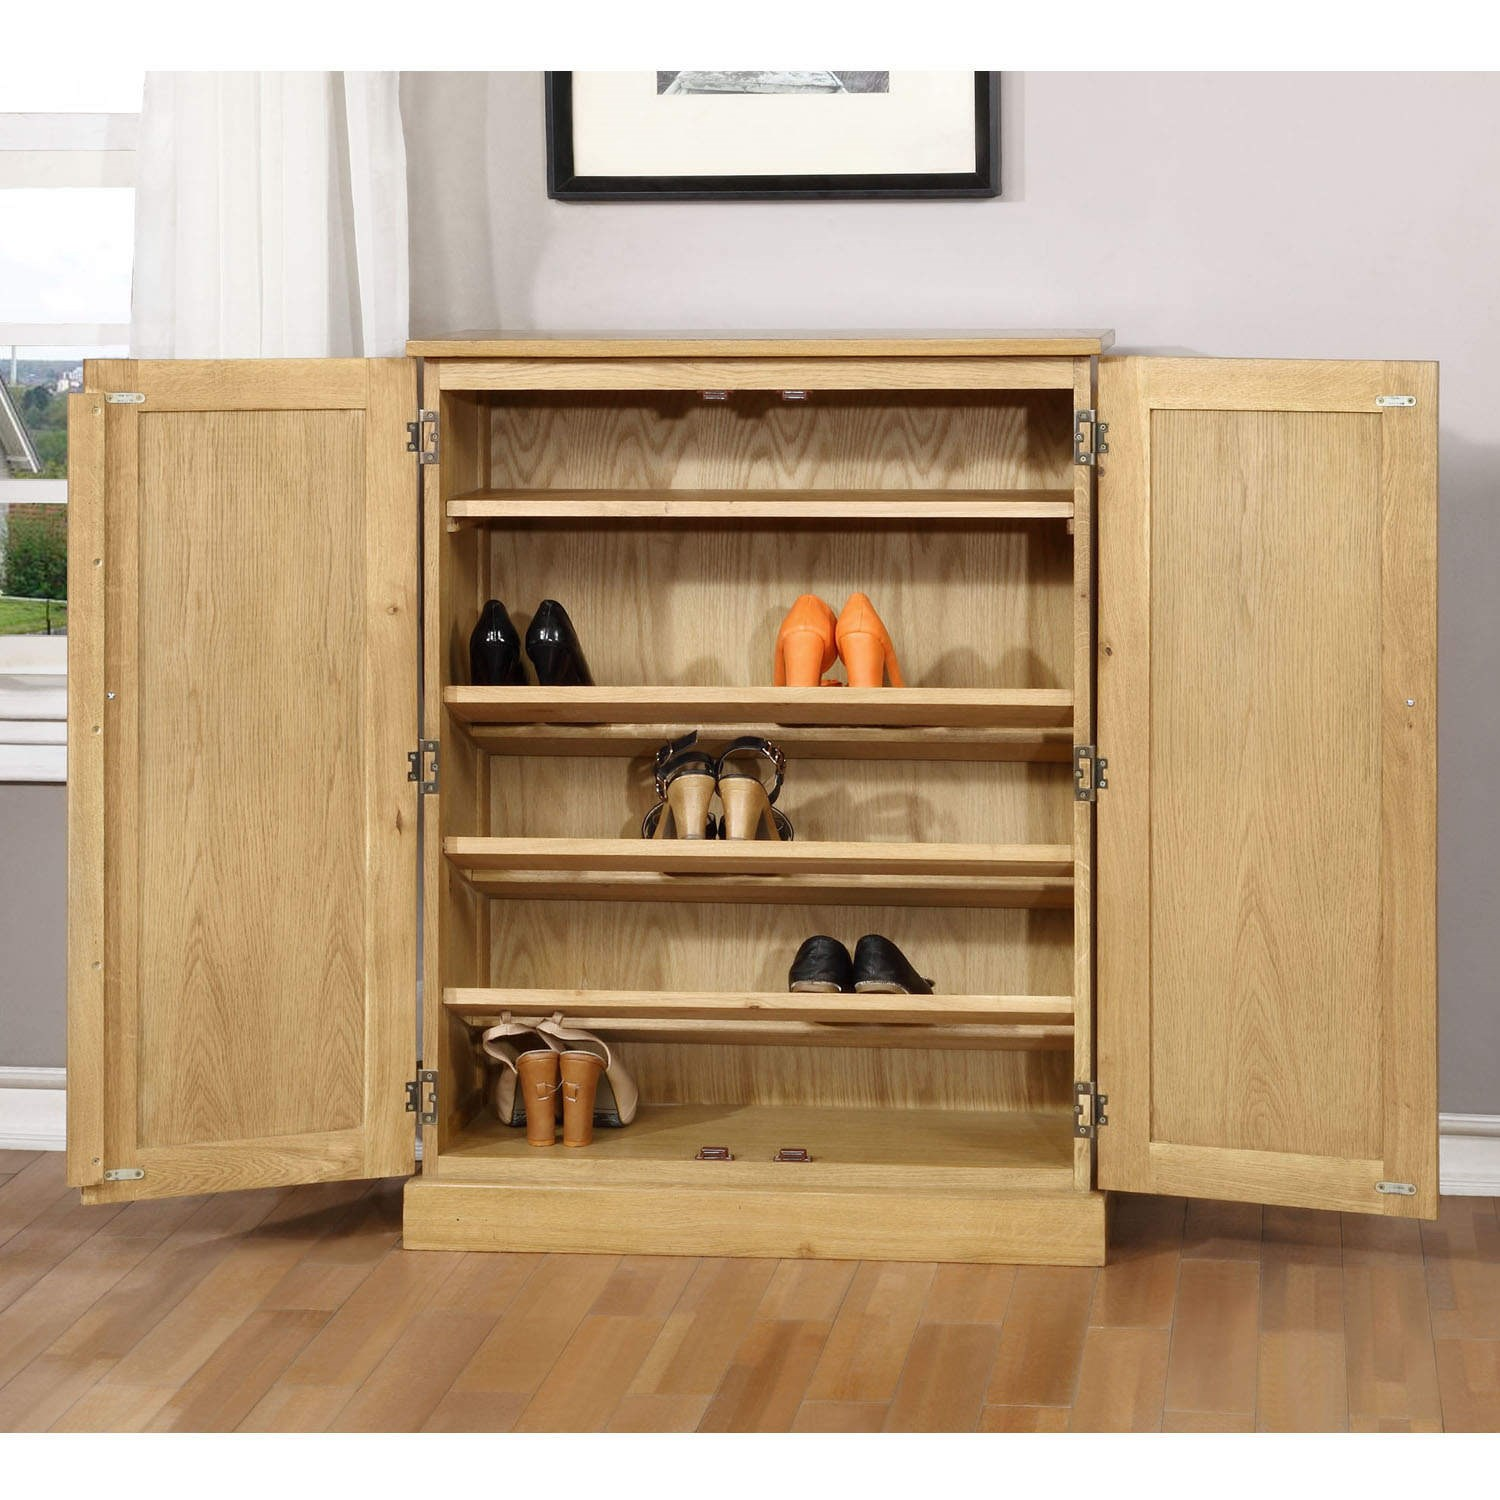 #957036  Solid Light Oak Windsor Shoe Cabinet Large Storage Cupboard   Shelves with 1500x1500 px of Recommended Large Cupboard With Shelves 15001500 save image @ avoidforclosure.info